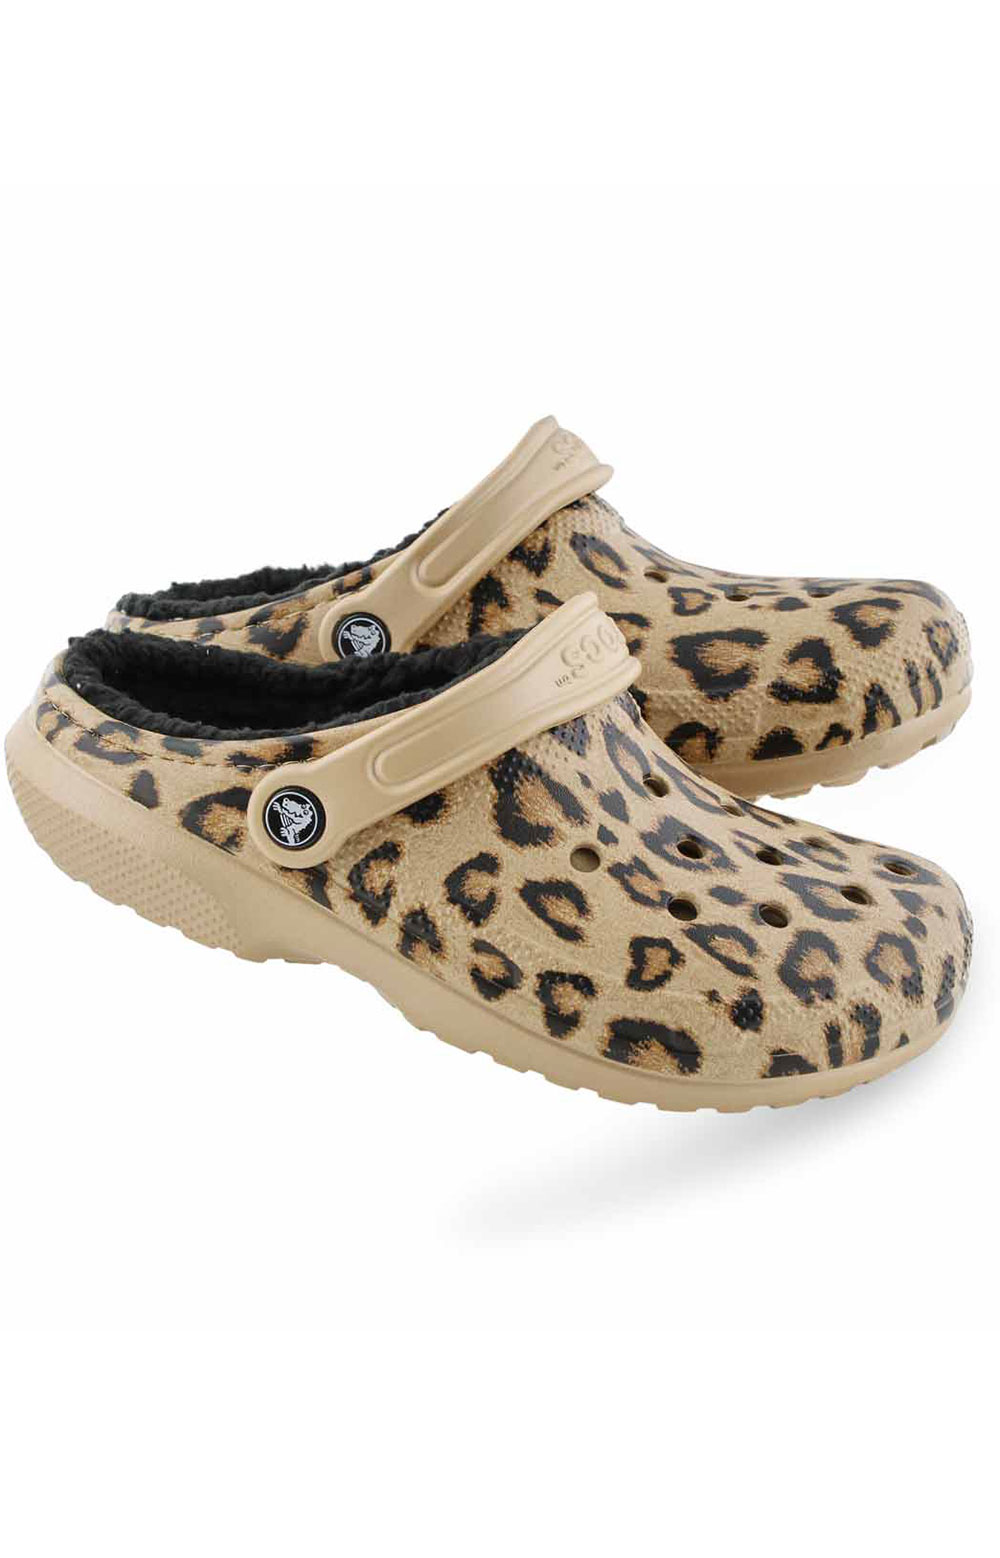 Classic Printed Lined Clog - Leopard/Black 4